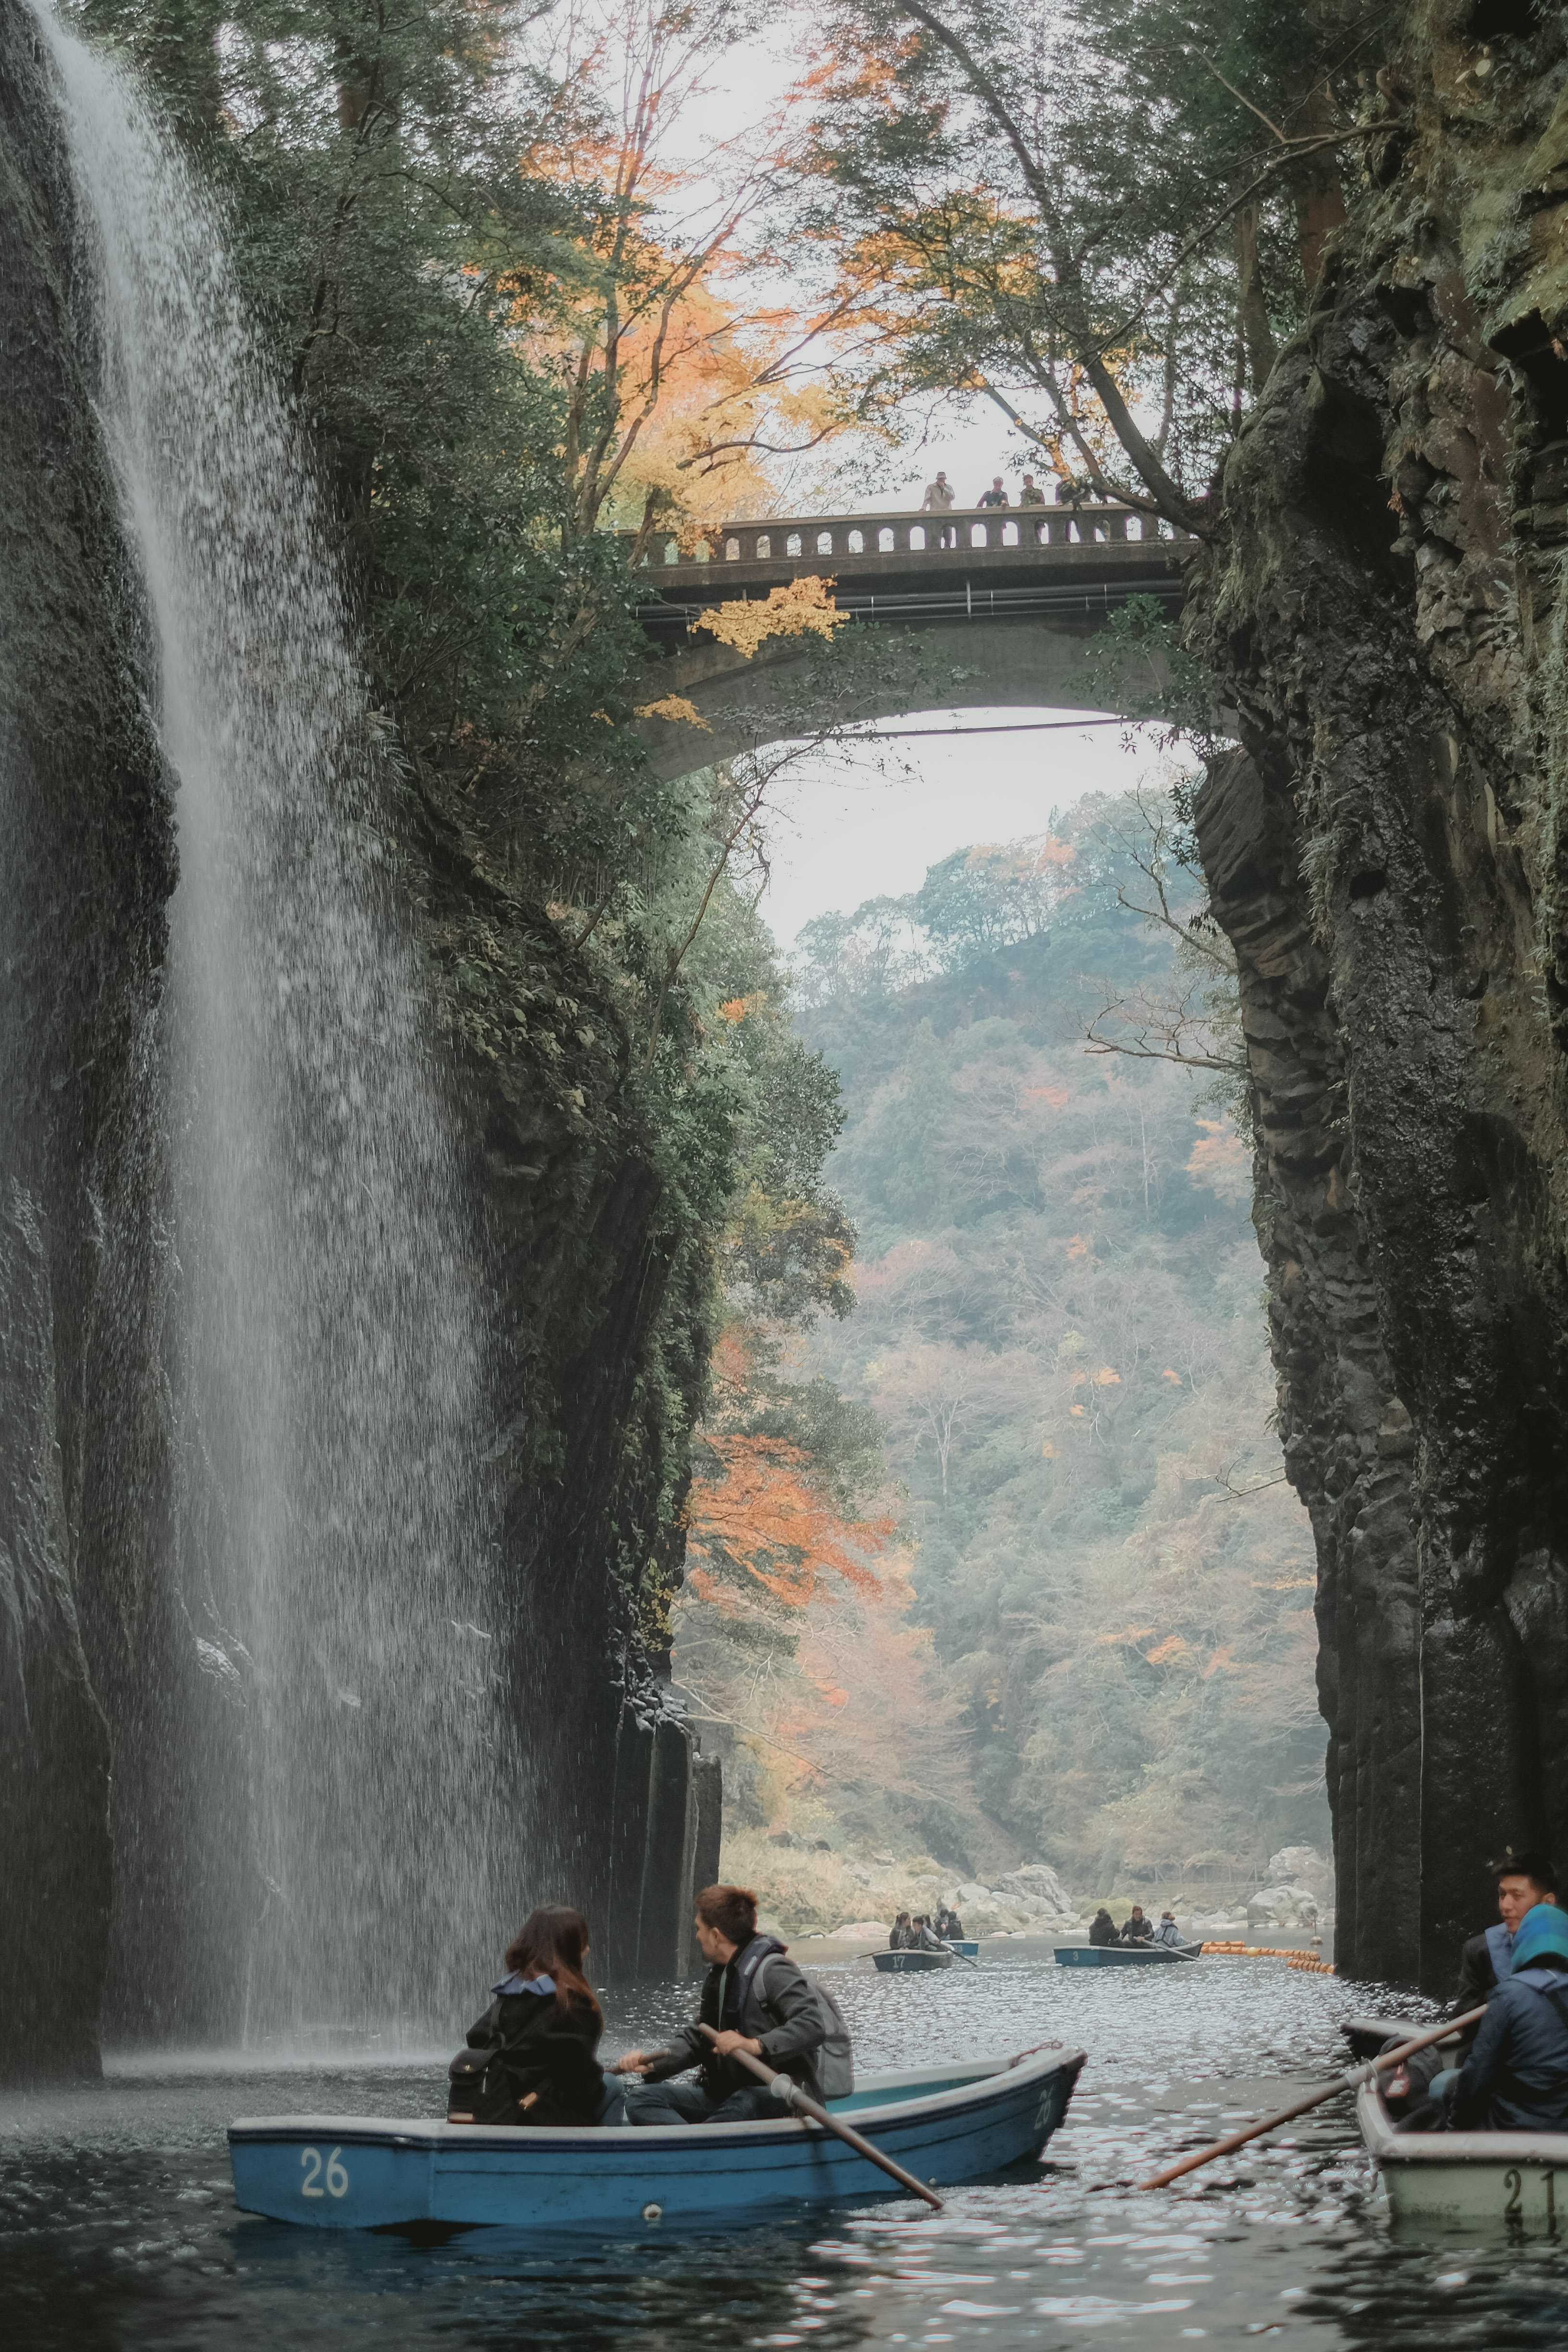 two people paddling a boat with a waterfall and a bridge in the background